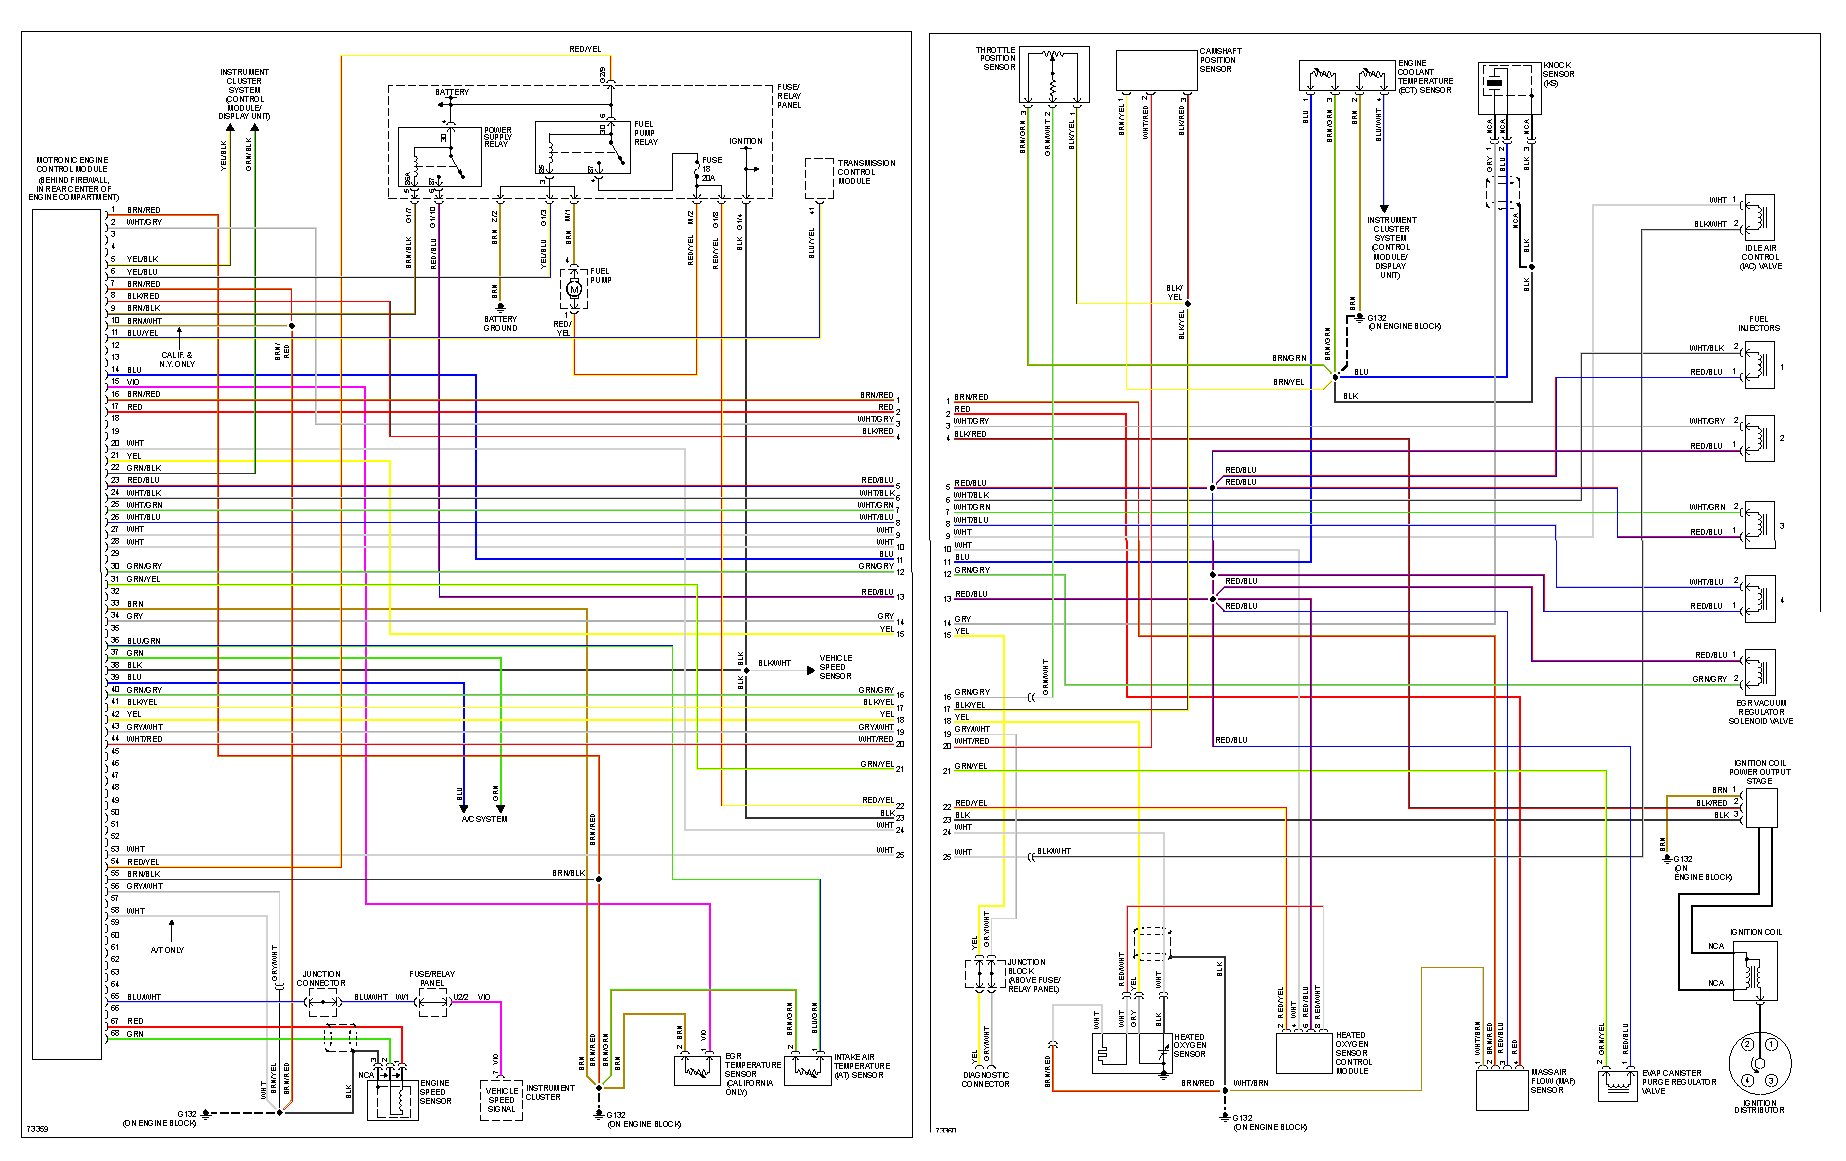 obd1 wiring diagram obd1 image wiring diagram obd1 wire harness diagram obd1 auto wiring diagram schematic on obd1 wiring diagram